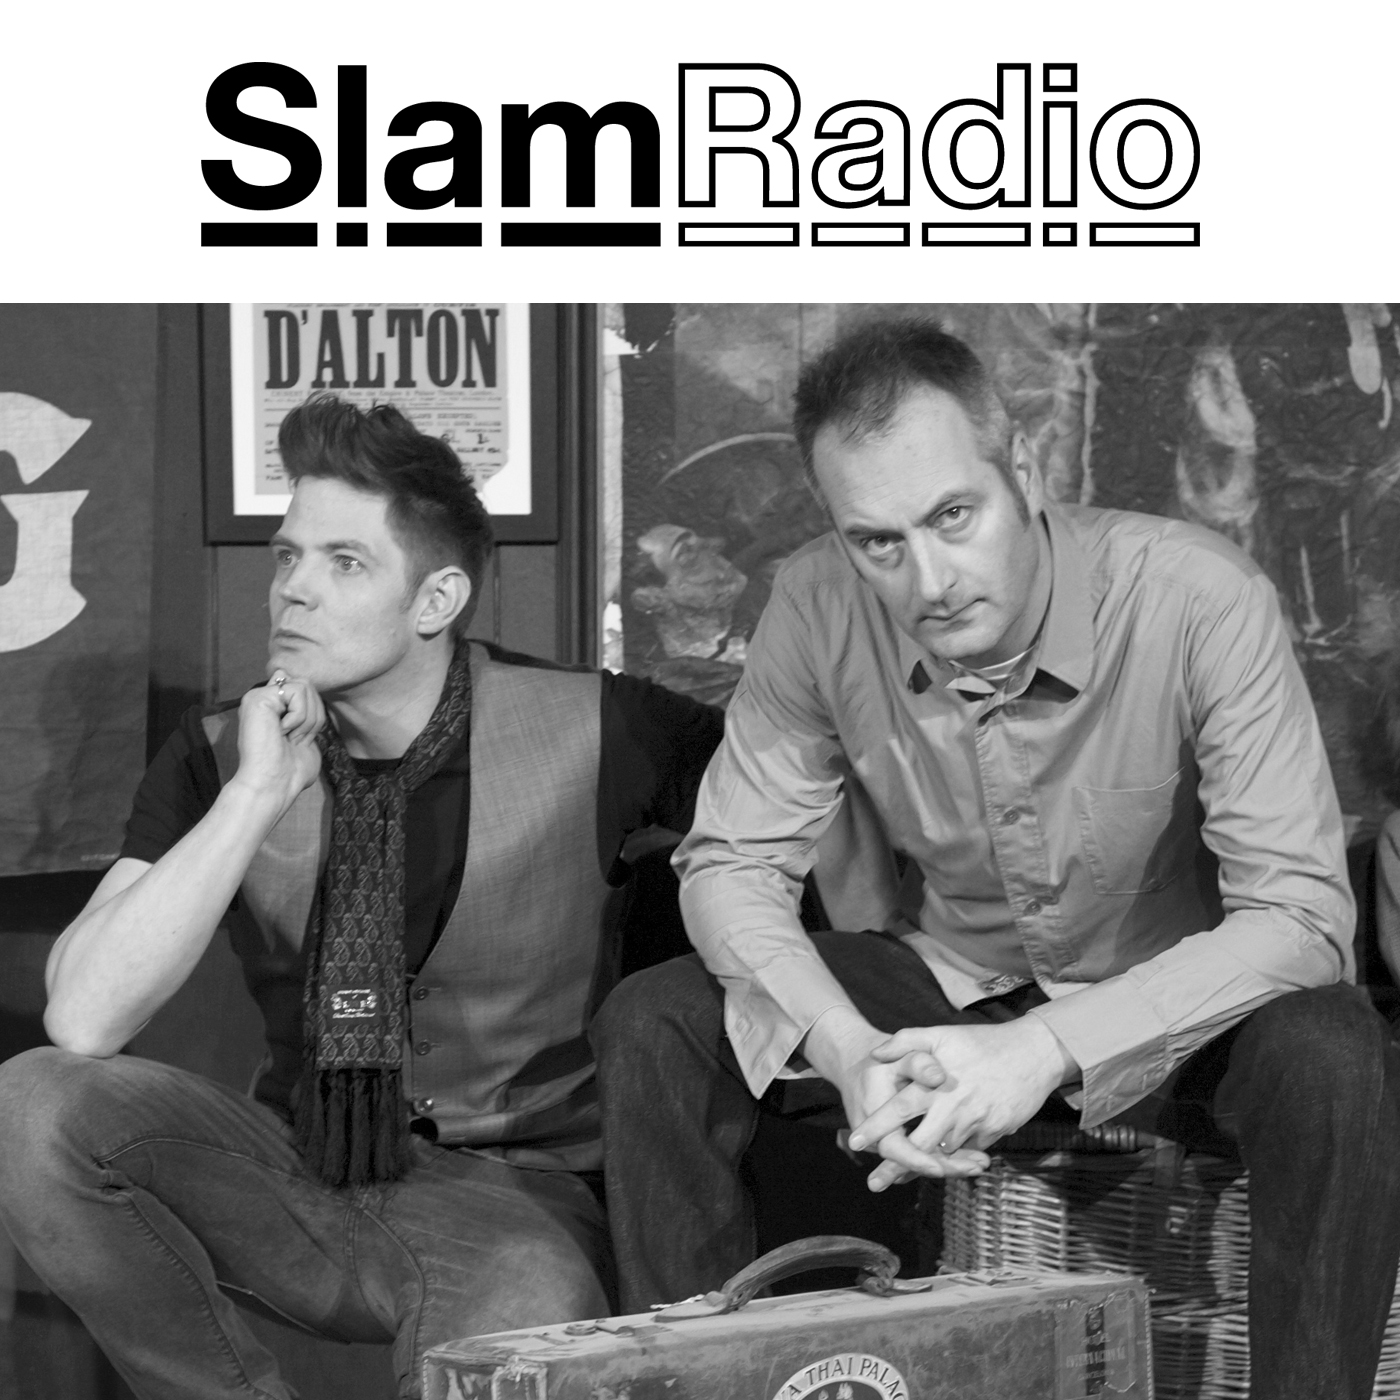 Delta Podcasts - Slam Radio by Soma Records (01.12.2017)